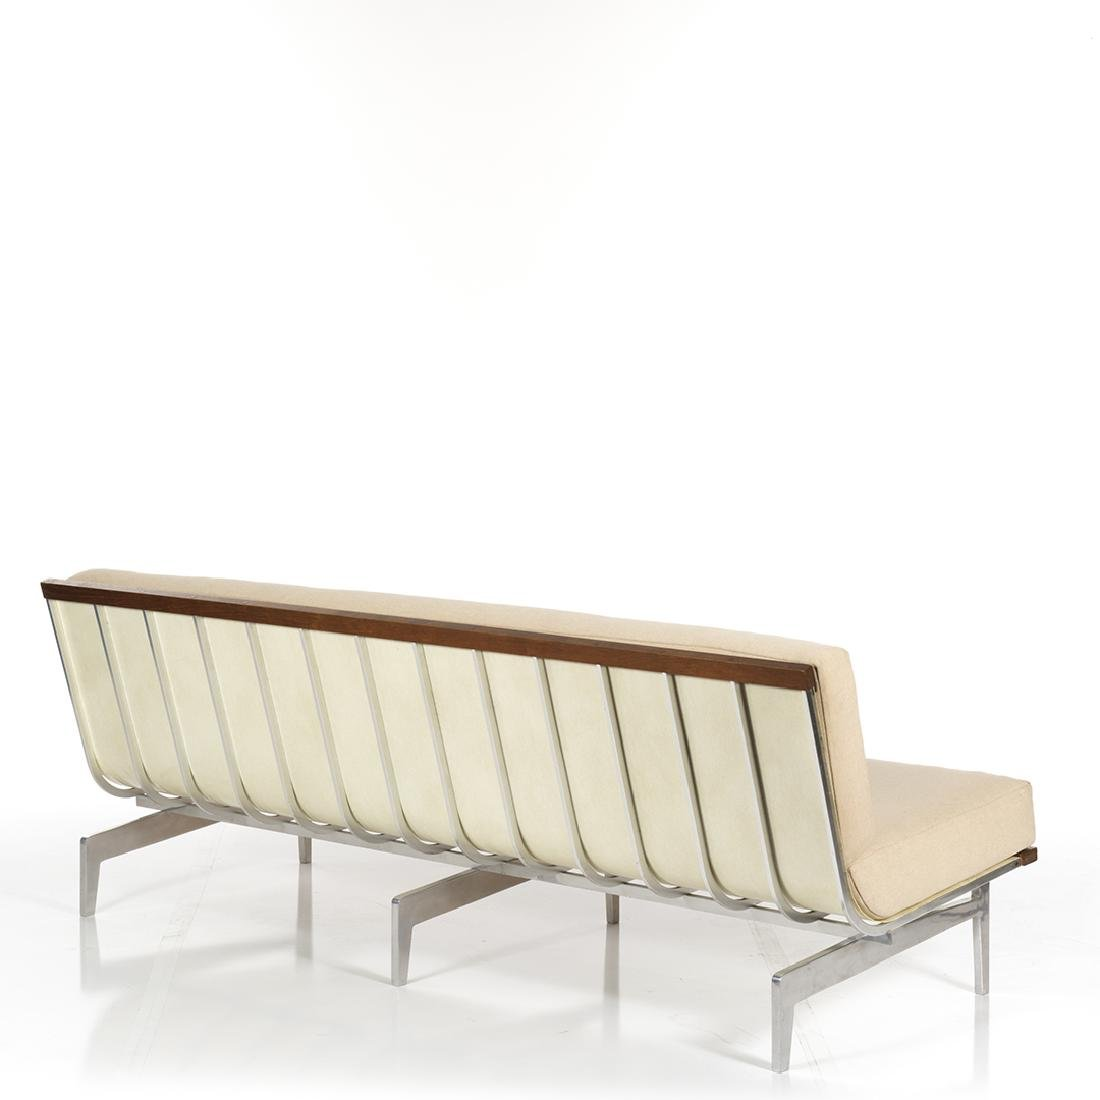 Lee DeSell Architectural Sofa - 4